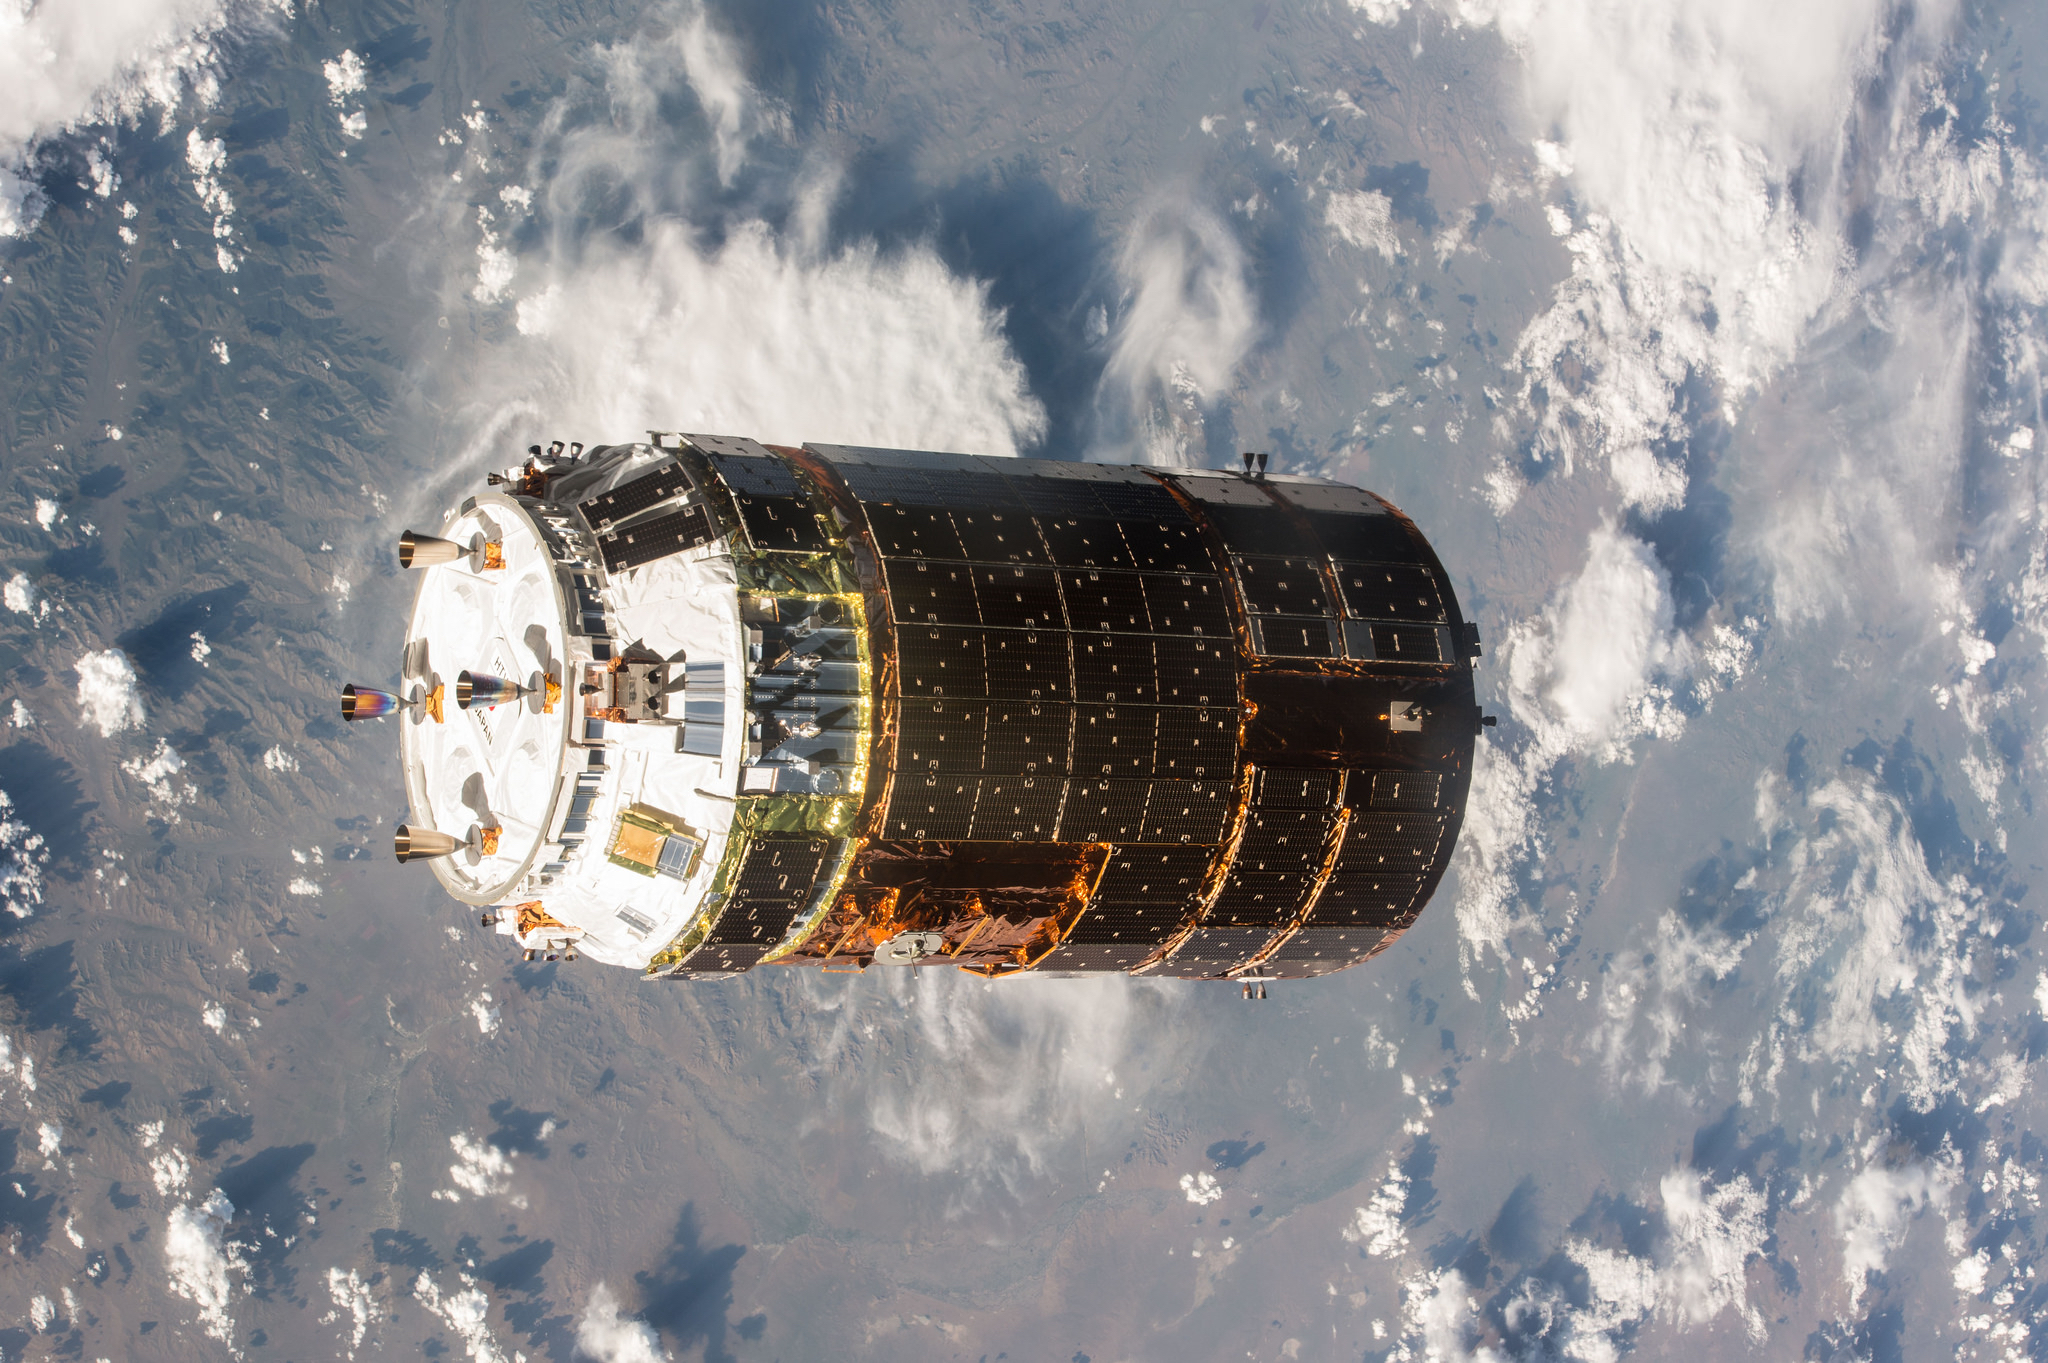 One-Year Space Mission: JAXA HTV-5 Final Approach Toward ISS